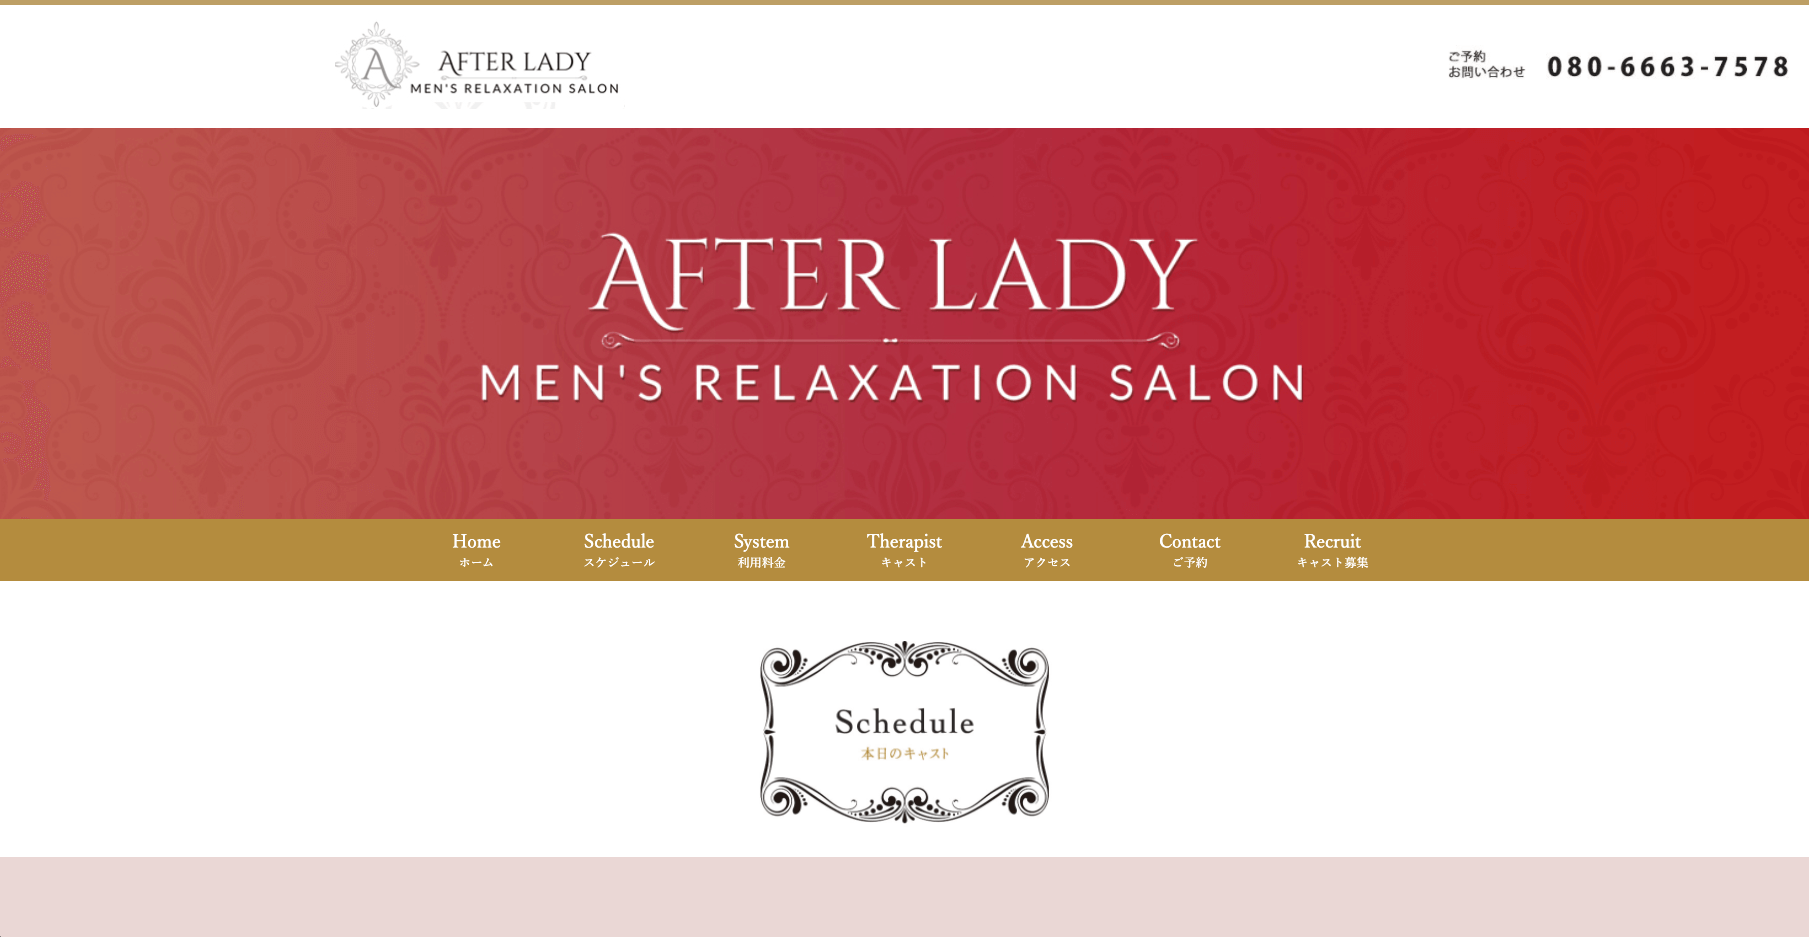 After Lady(アフターレディ)